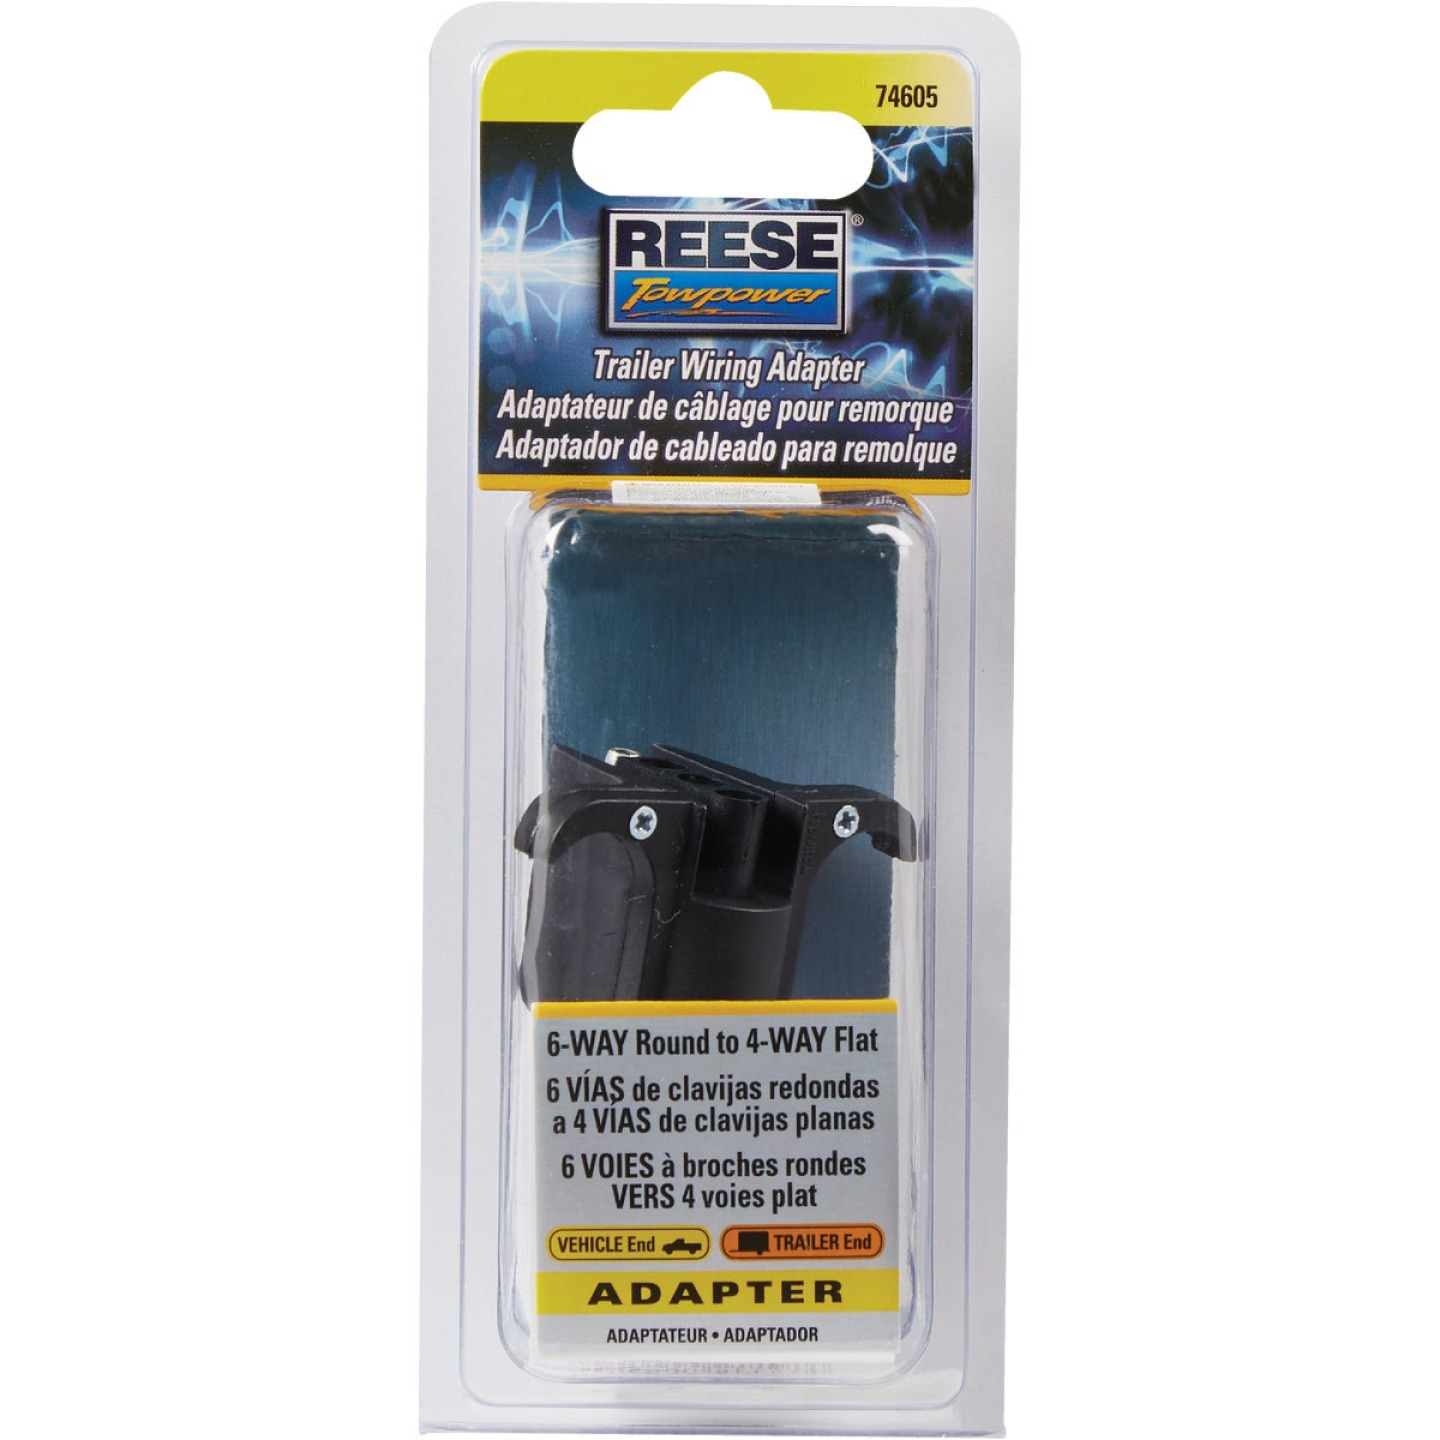 Reese Towpower 6-Pin to 4-Flat Plug-In Adapter Image 2